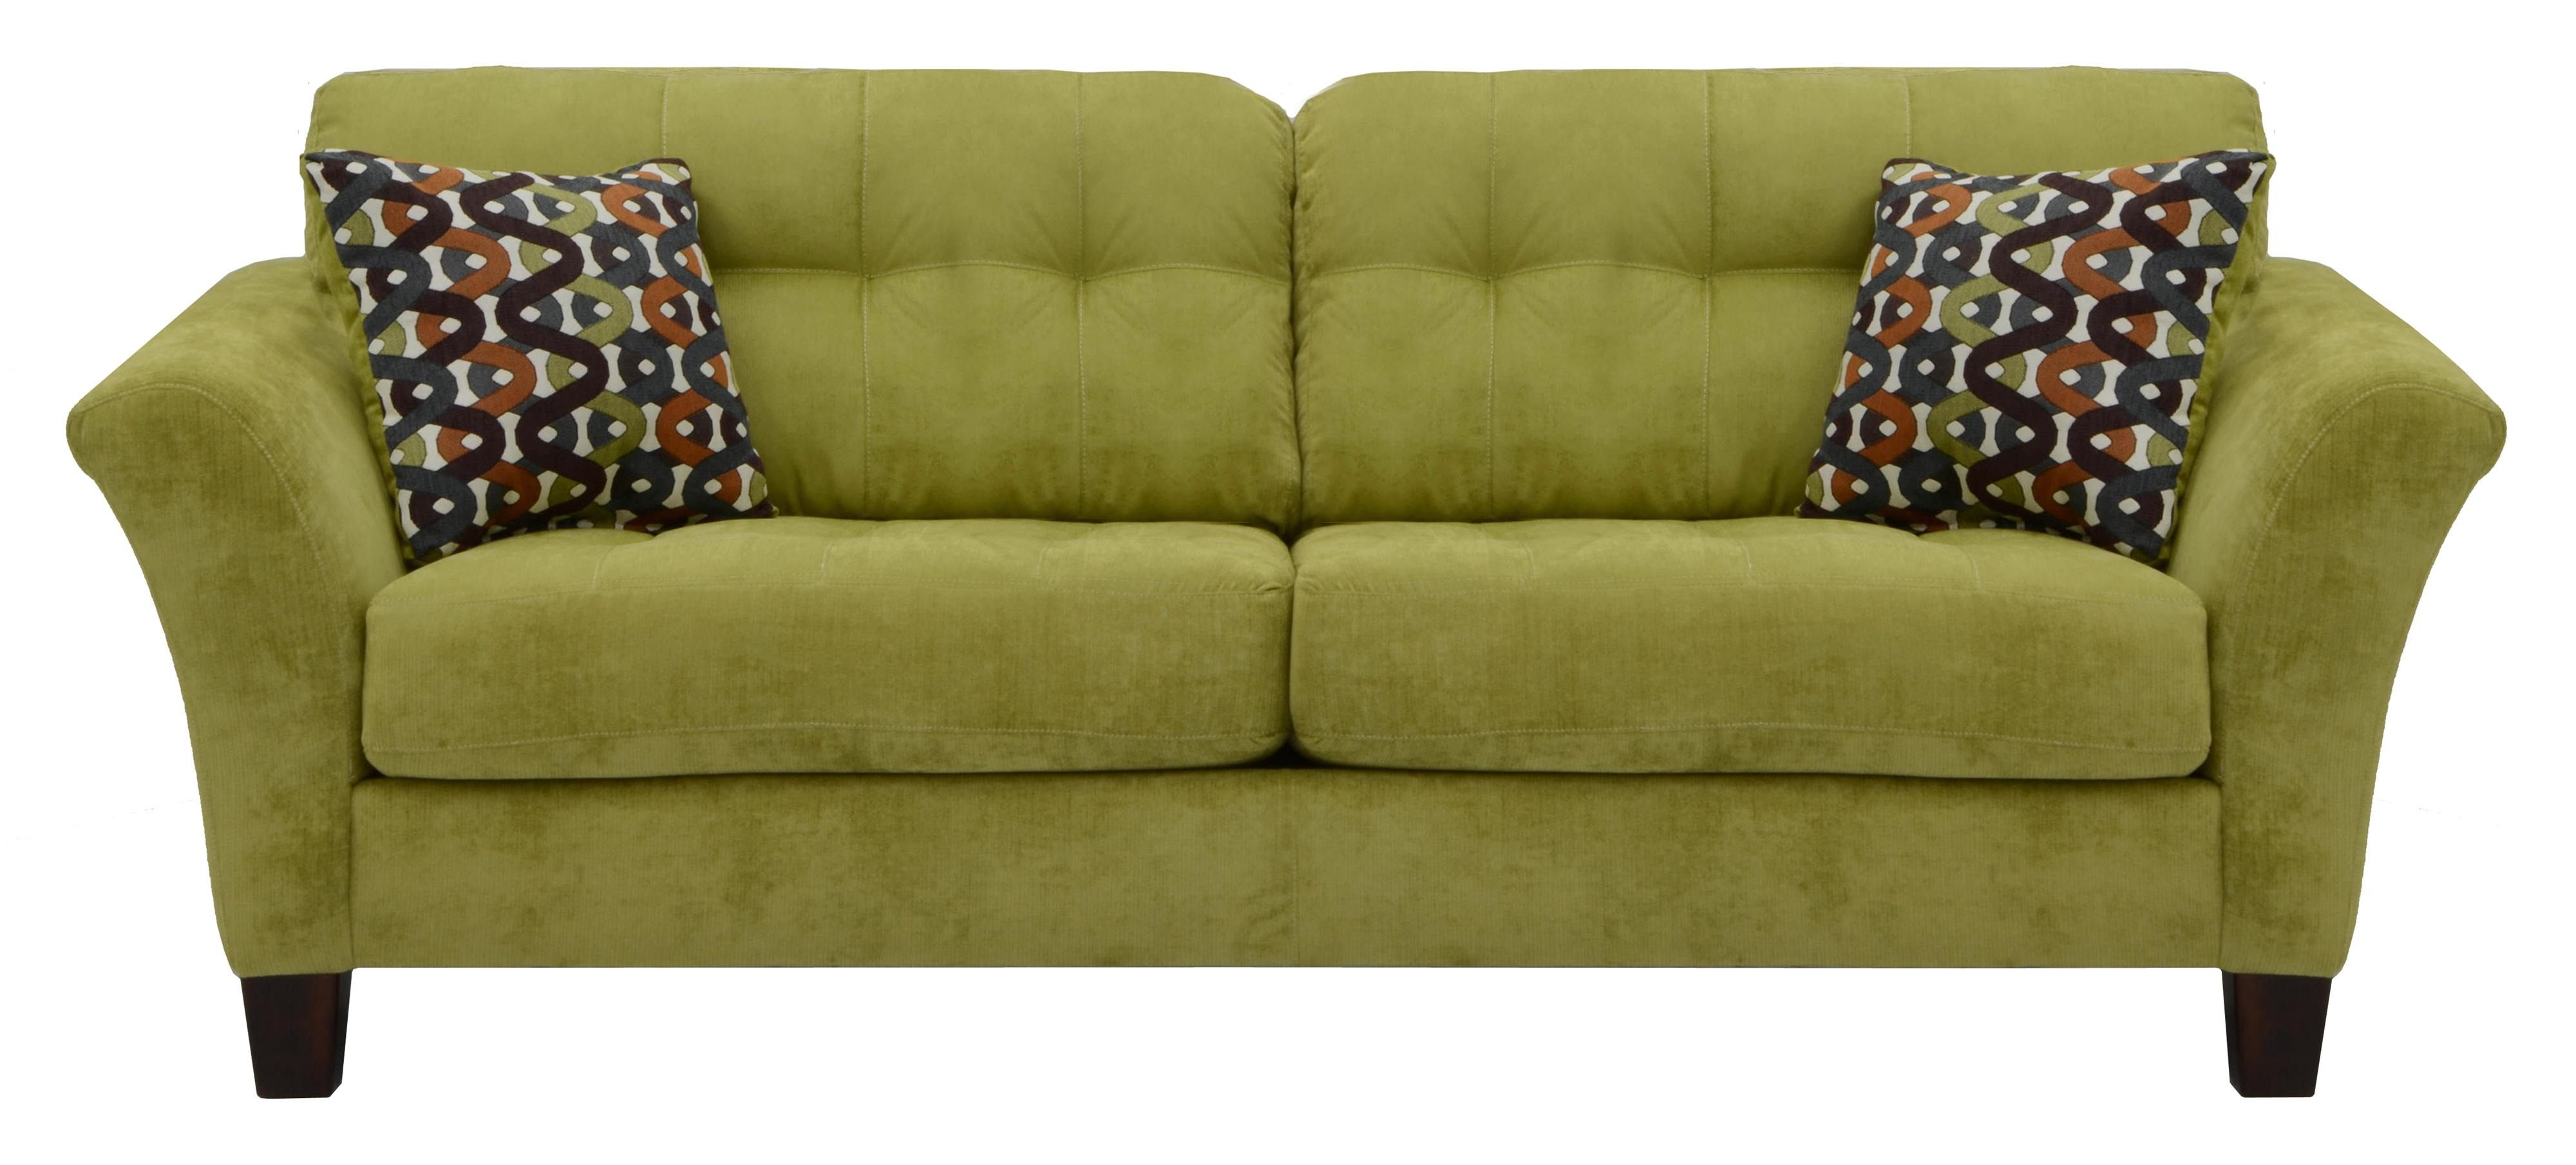 2 cushion sofa small angled sectional with seats and tufted back cushions by jackson furniture